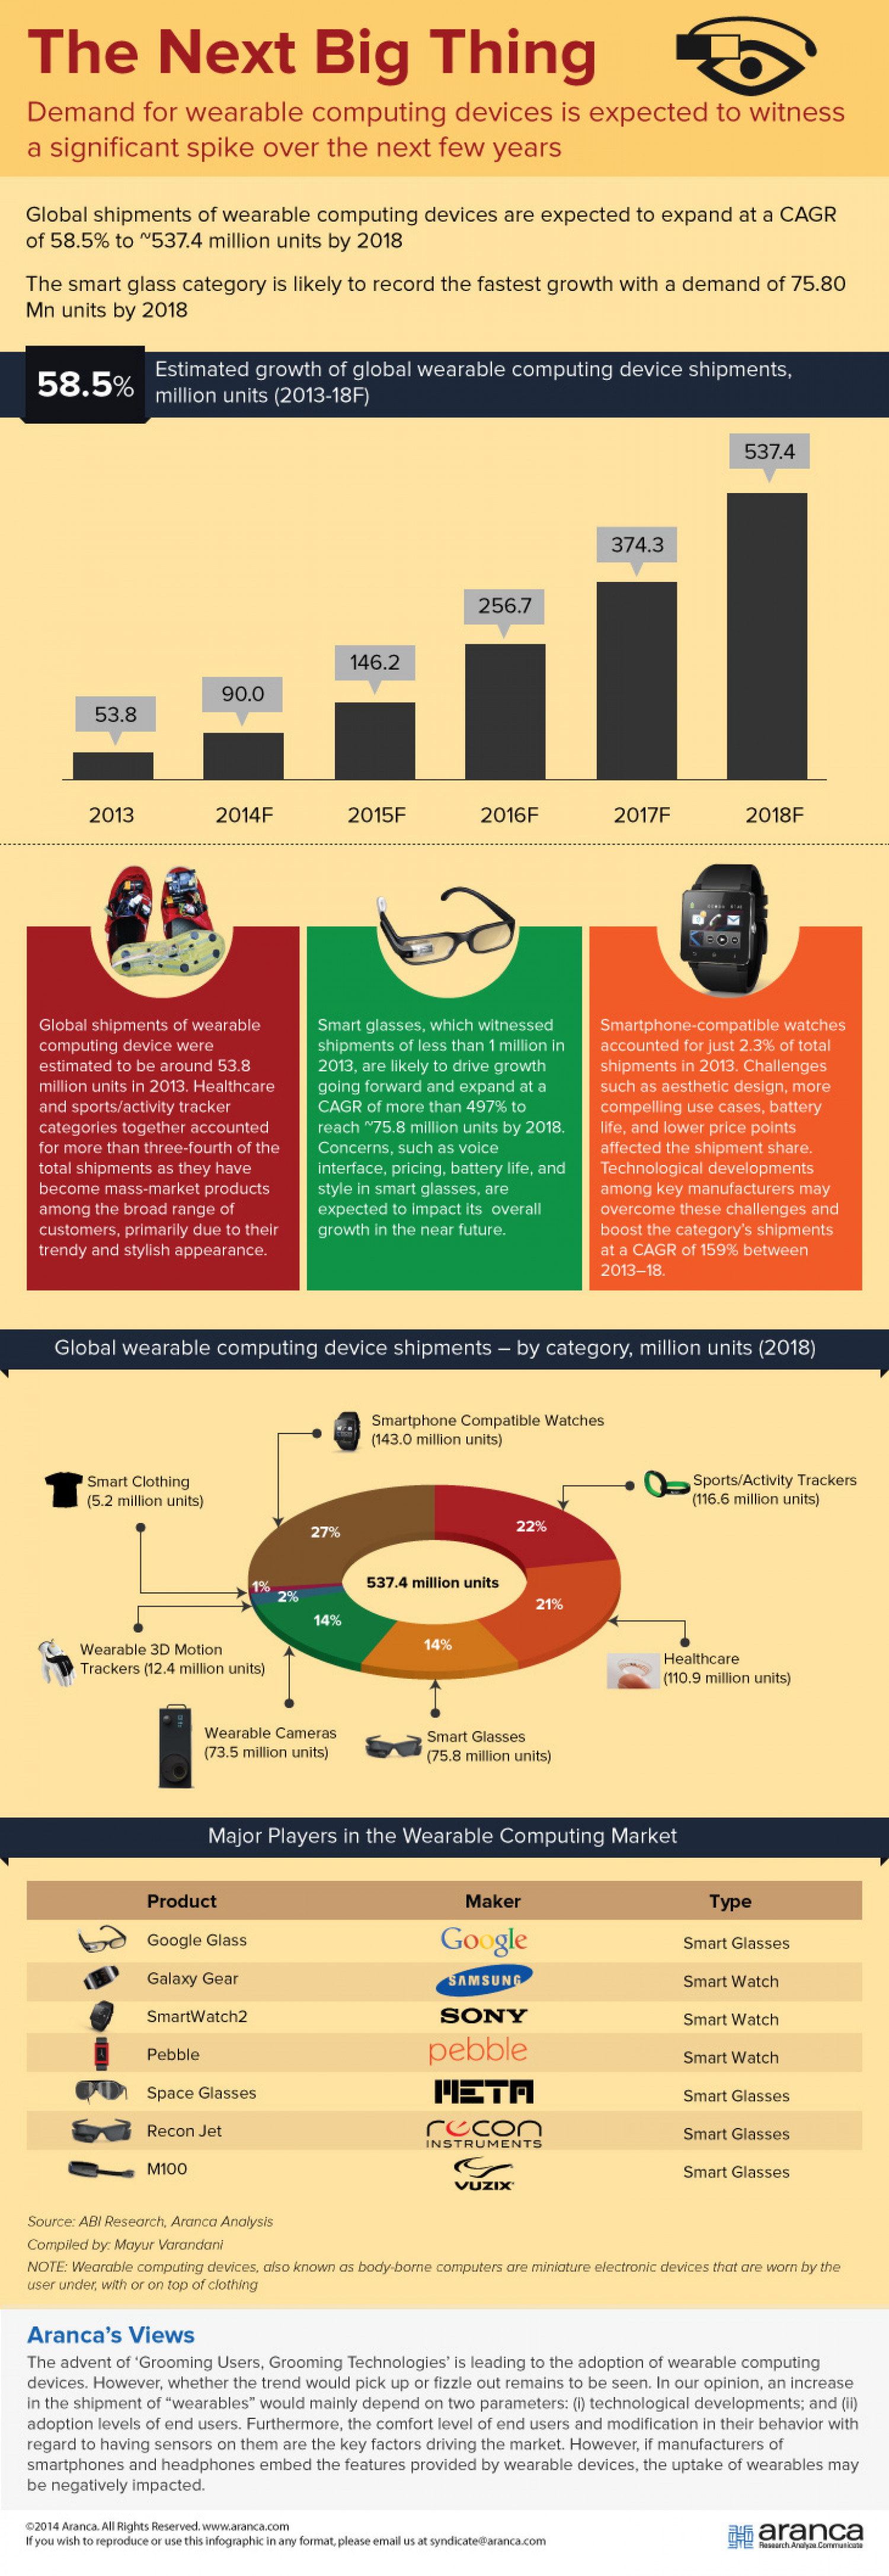 The Next Big Thing- Demand for wearable computing devices expected to rise significantly over the next few years Infographic